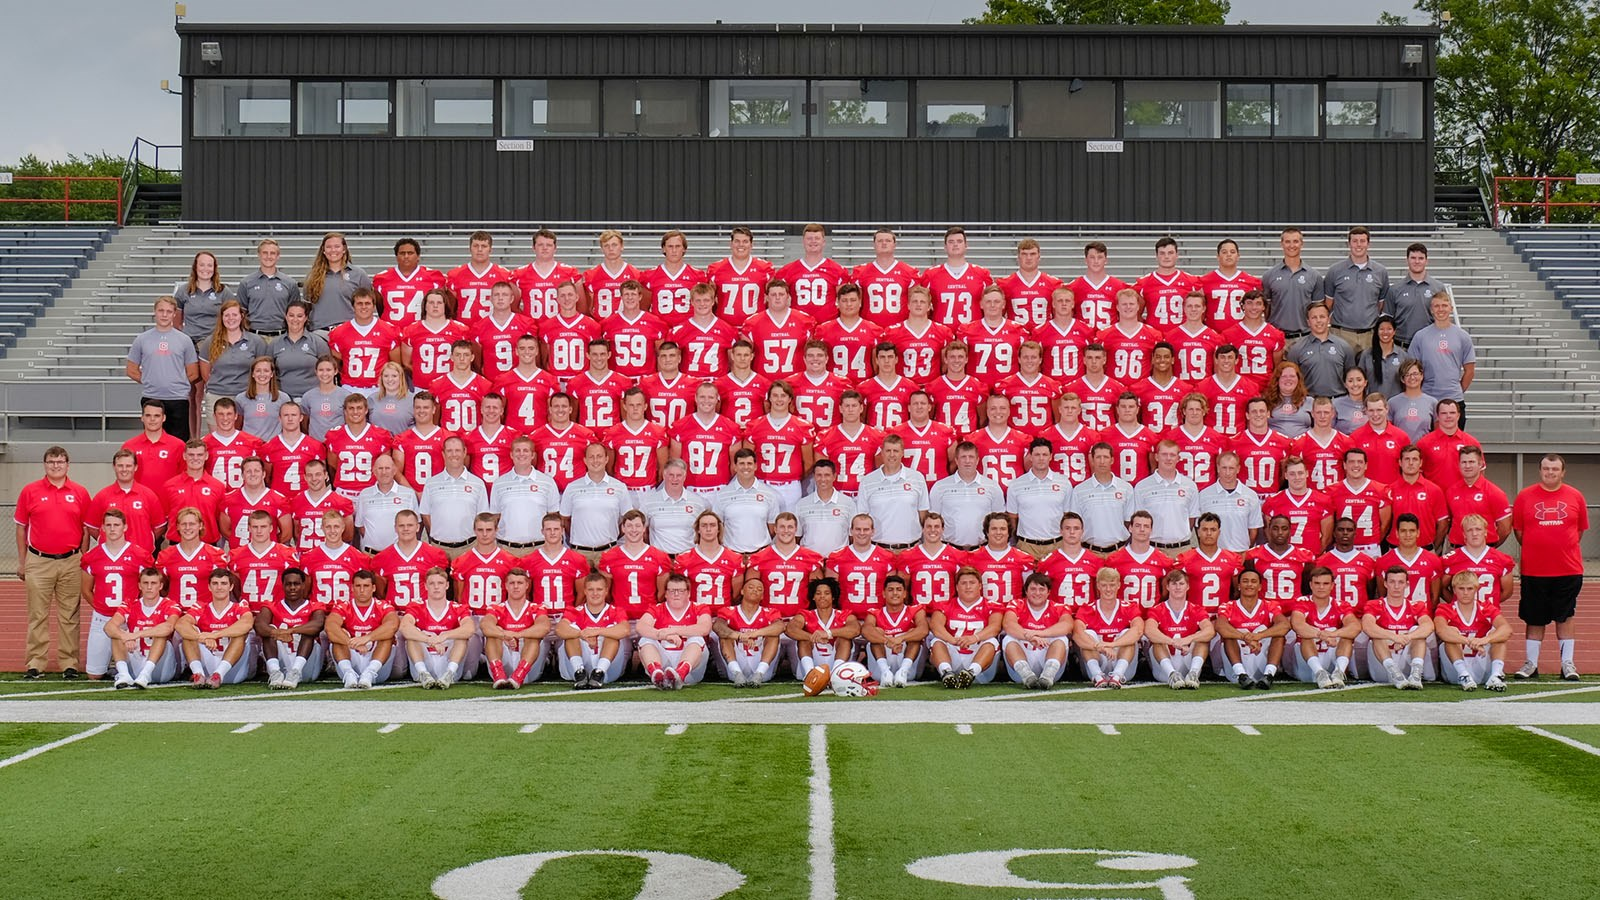 2018 Football Roster Central College Athletics